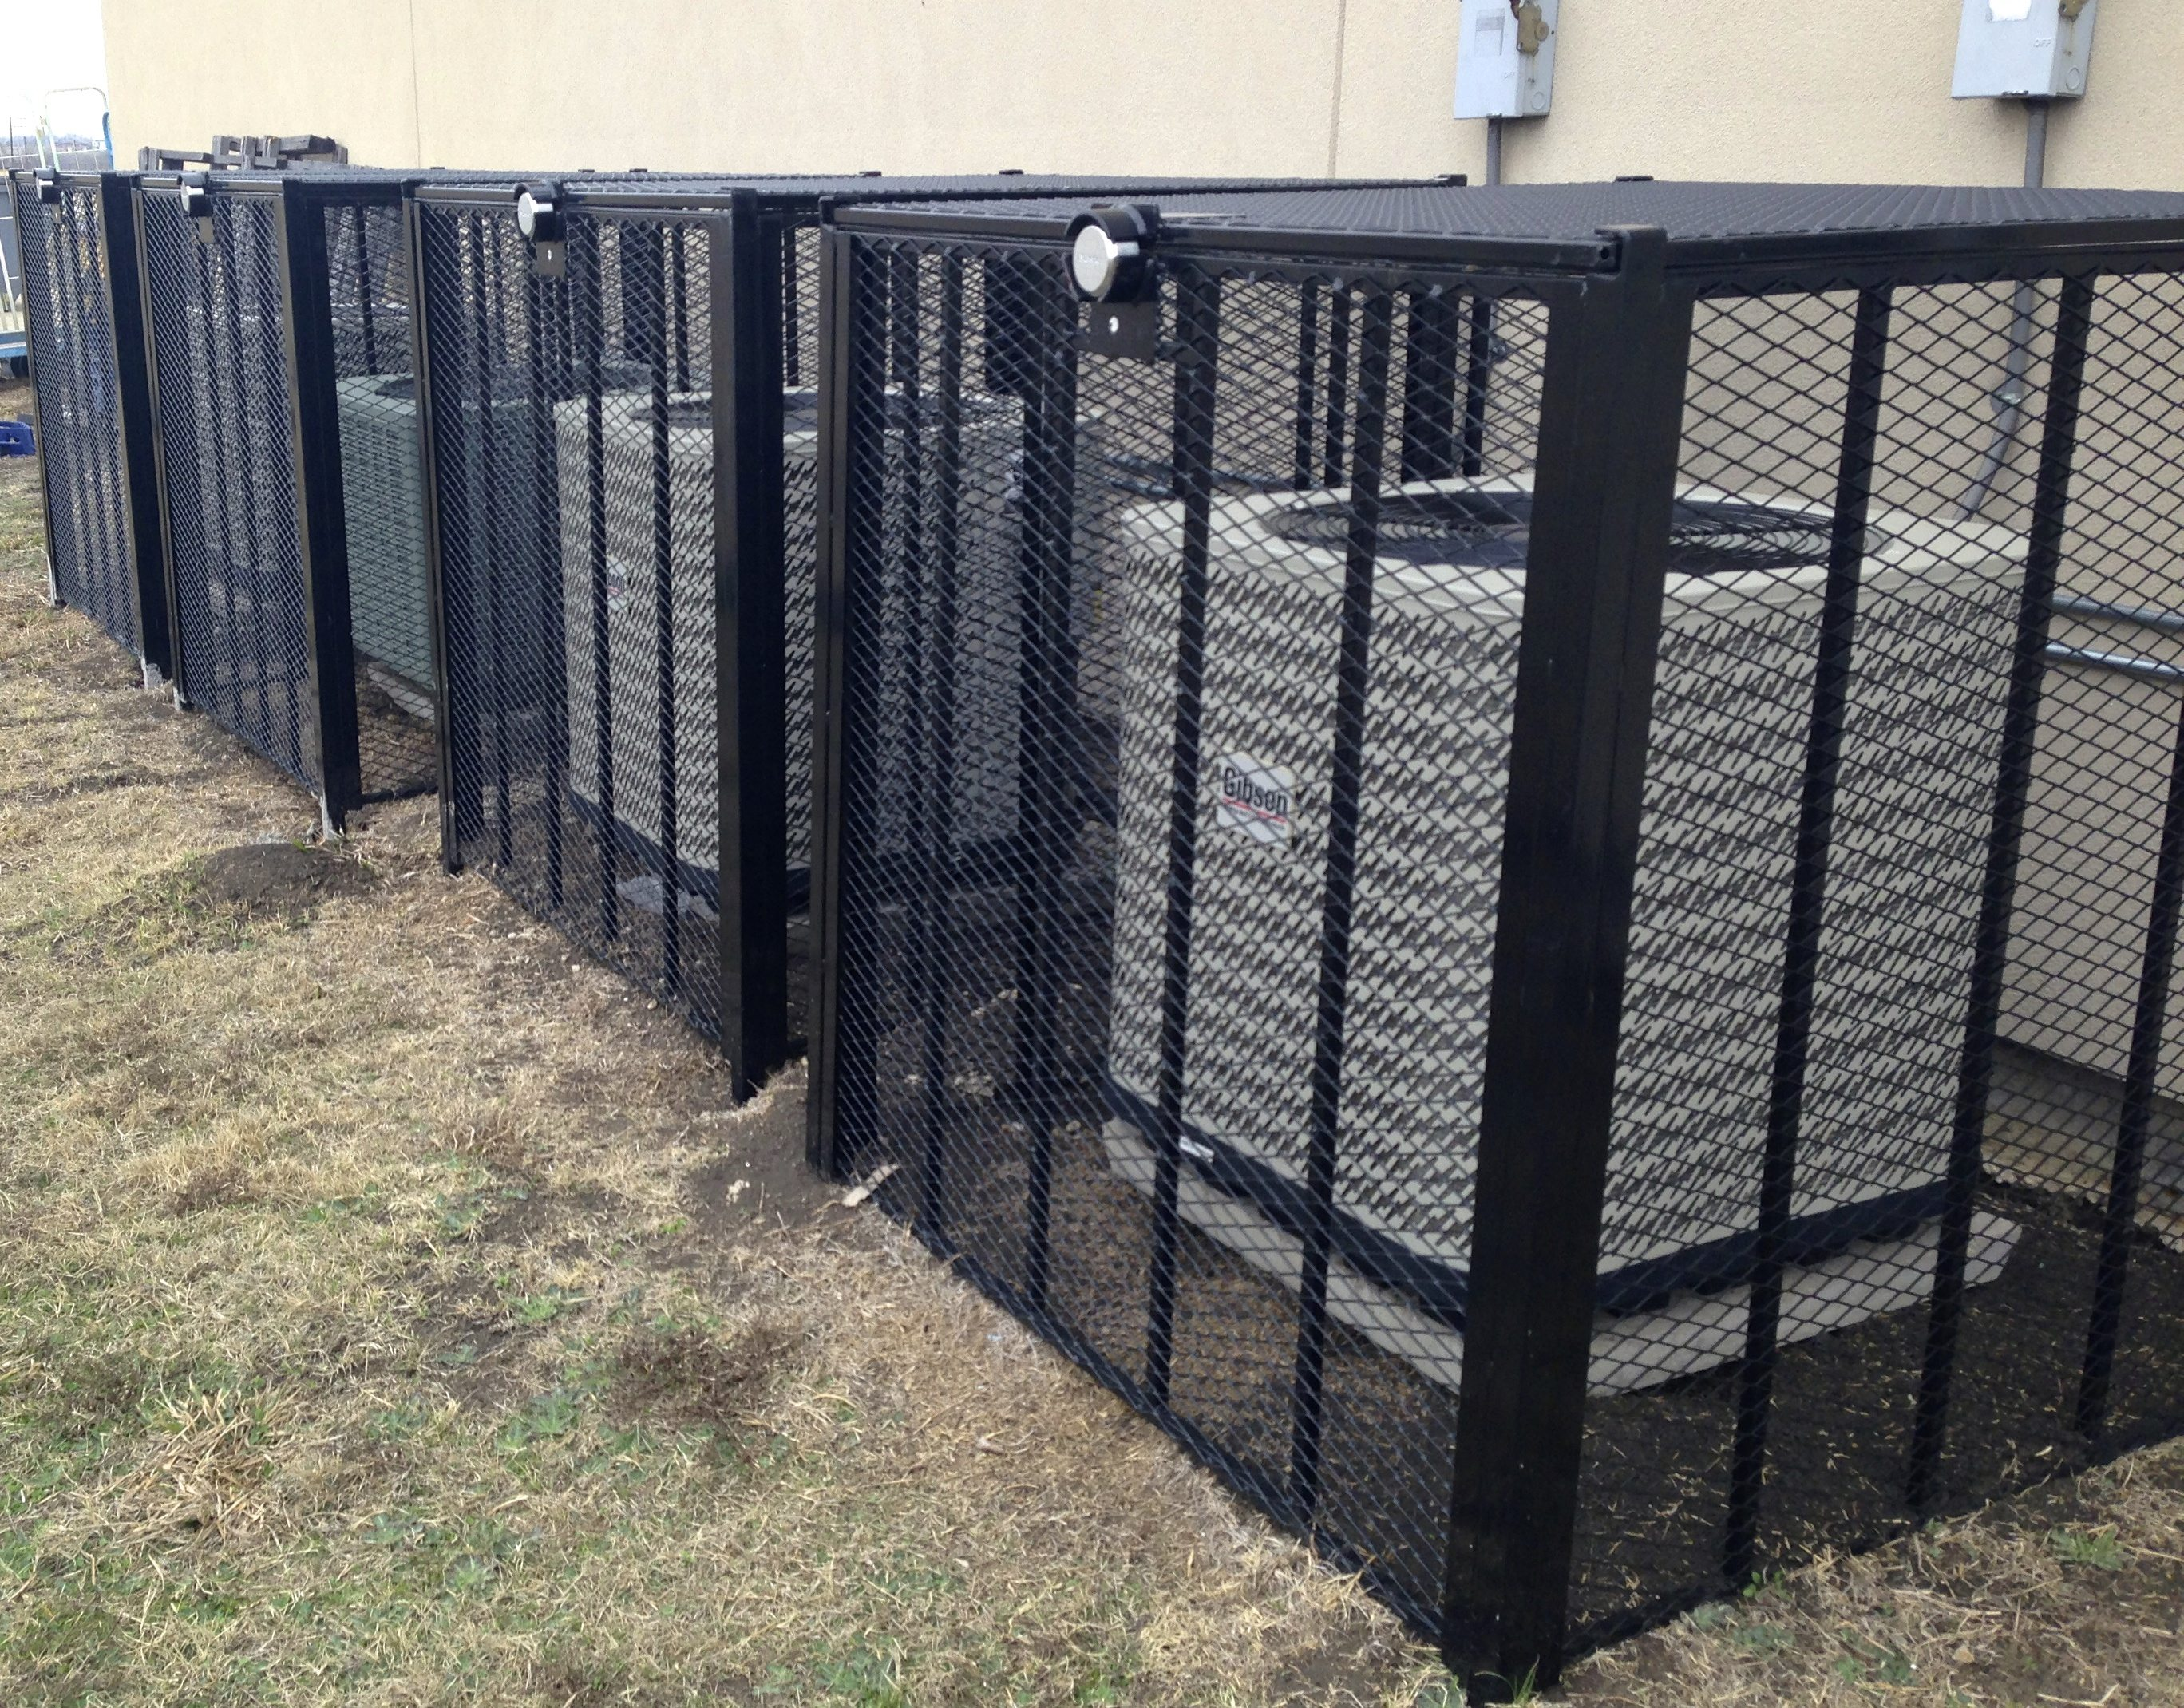 Air Conditioning Cages Custom Conditioner Security Picture #80704B